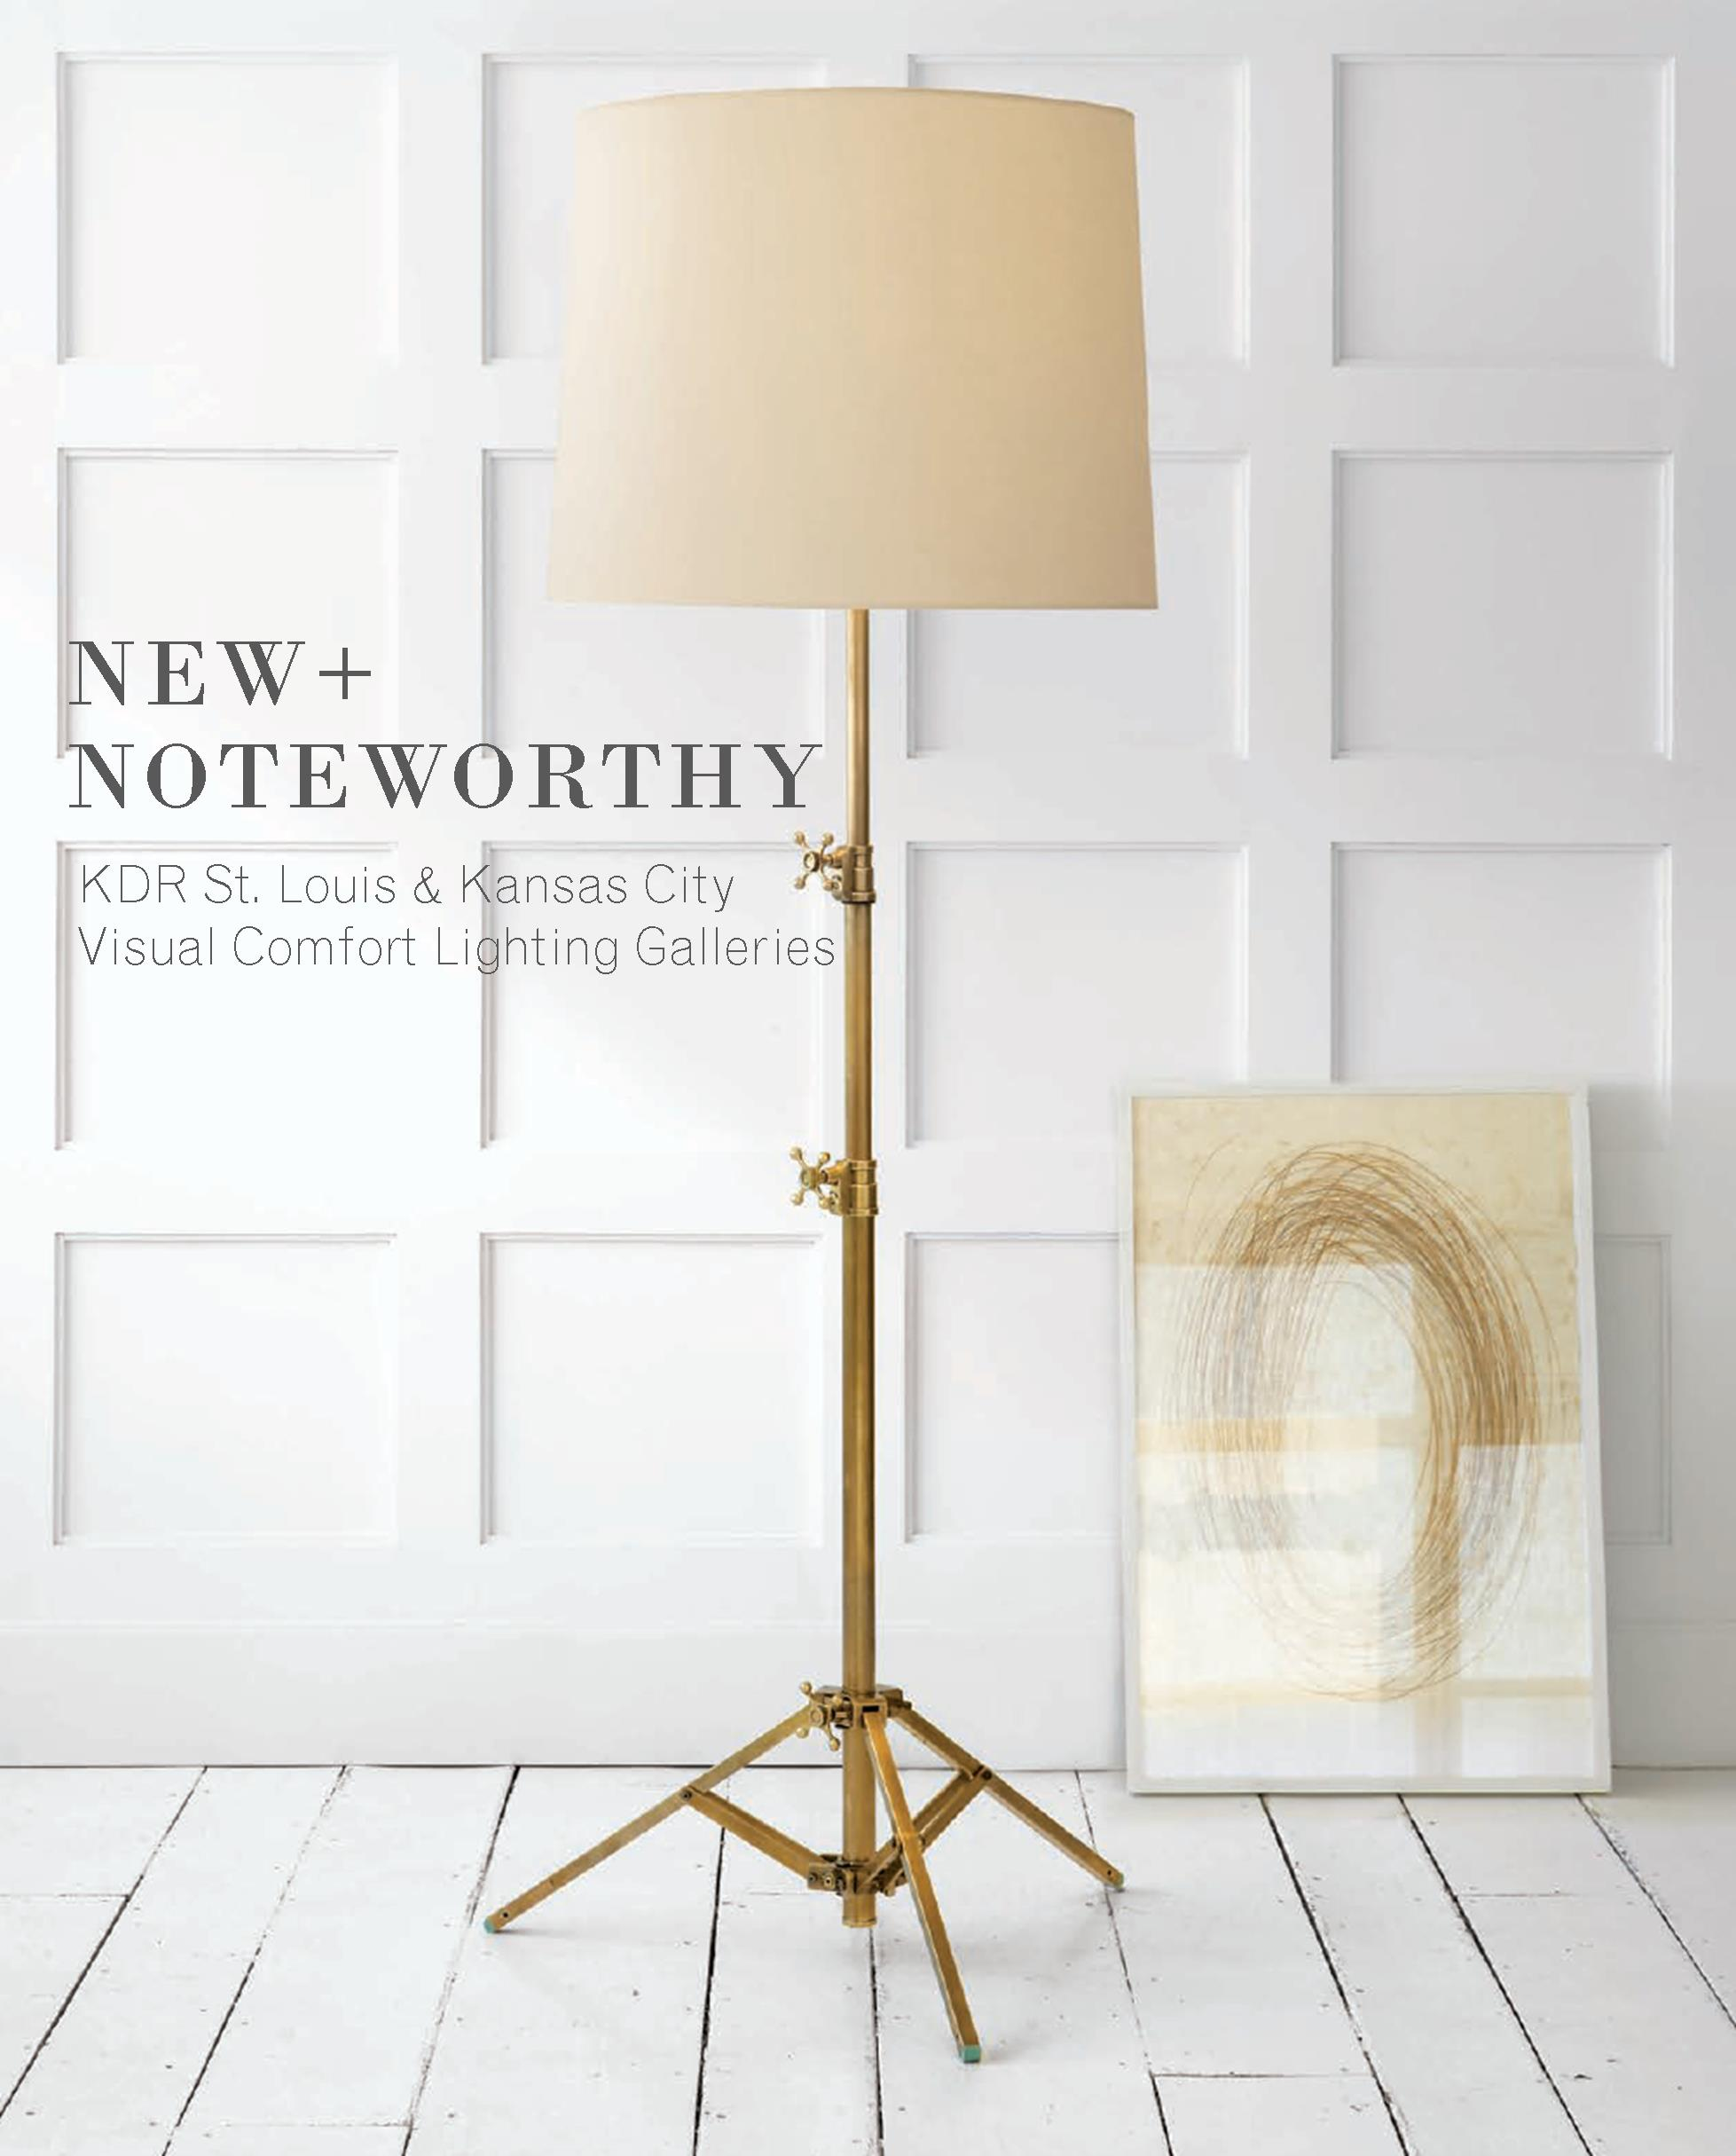 New noteworthy visual comfort lighting galleries for Visual comfort ralph lauren